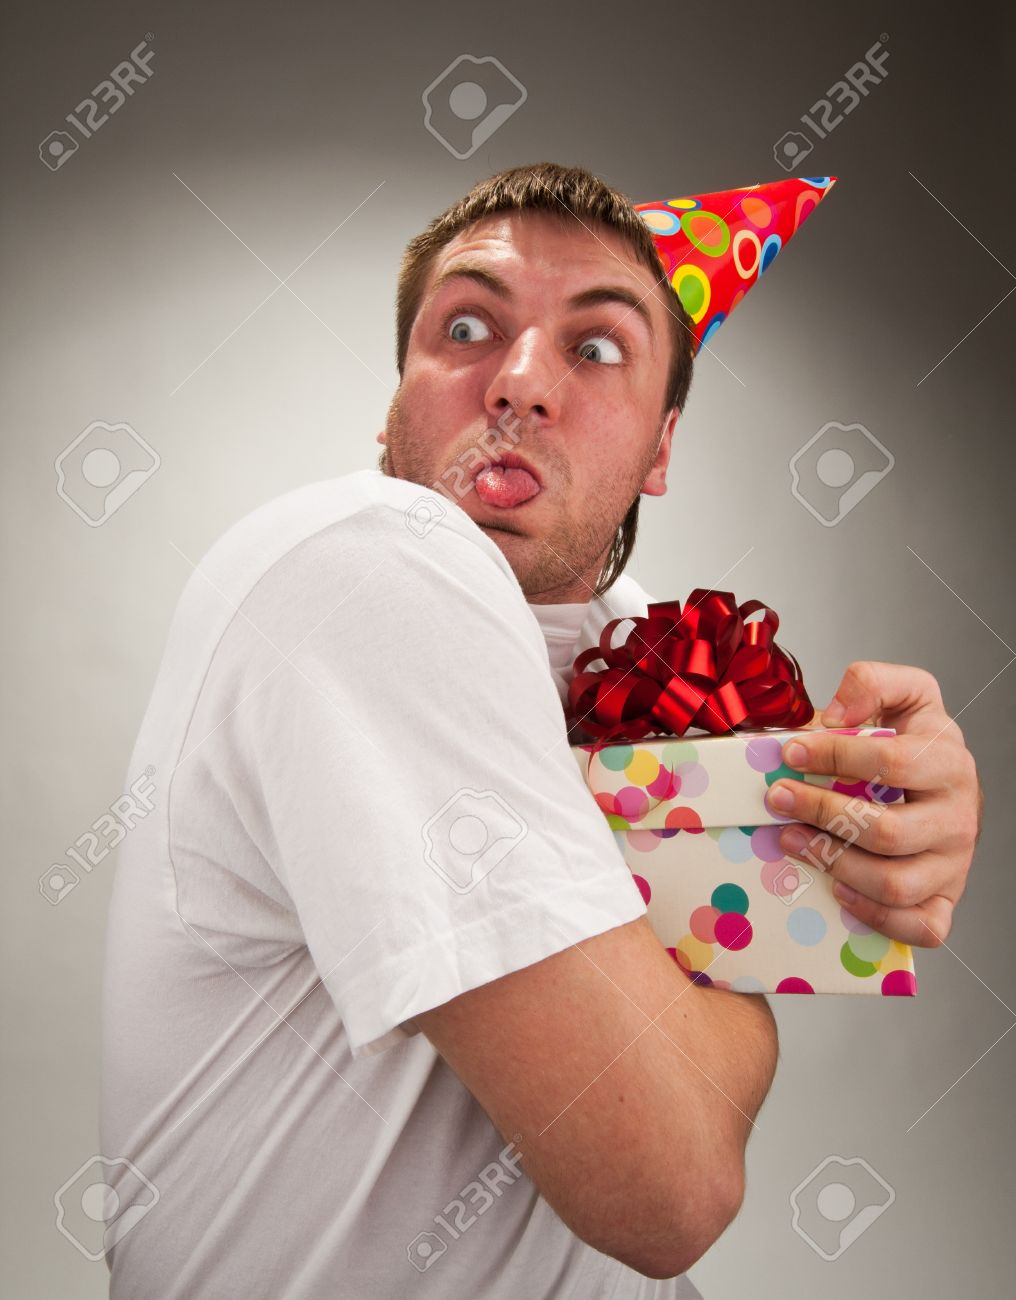 Funny Birthday Man With Gift Making Face Stock Photo Picture And